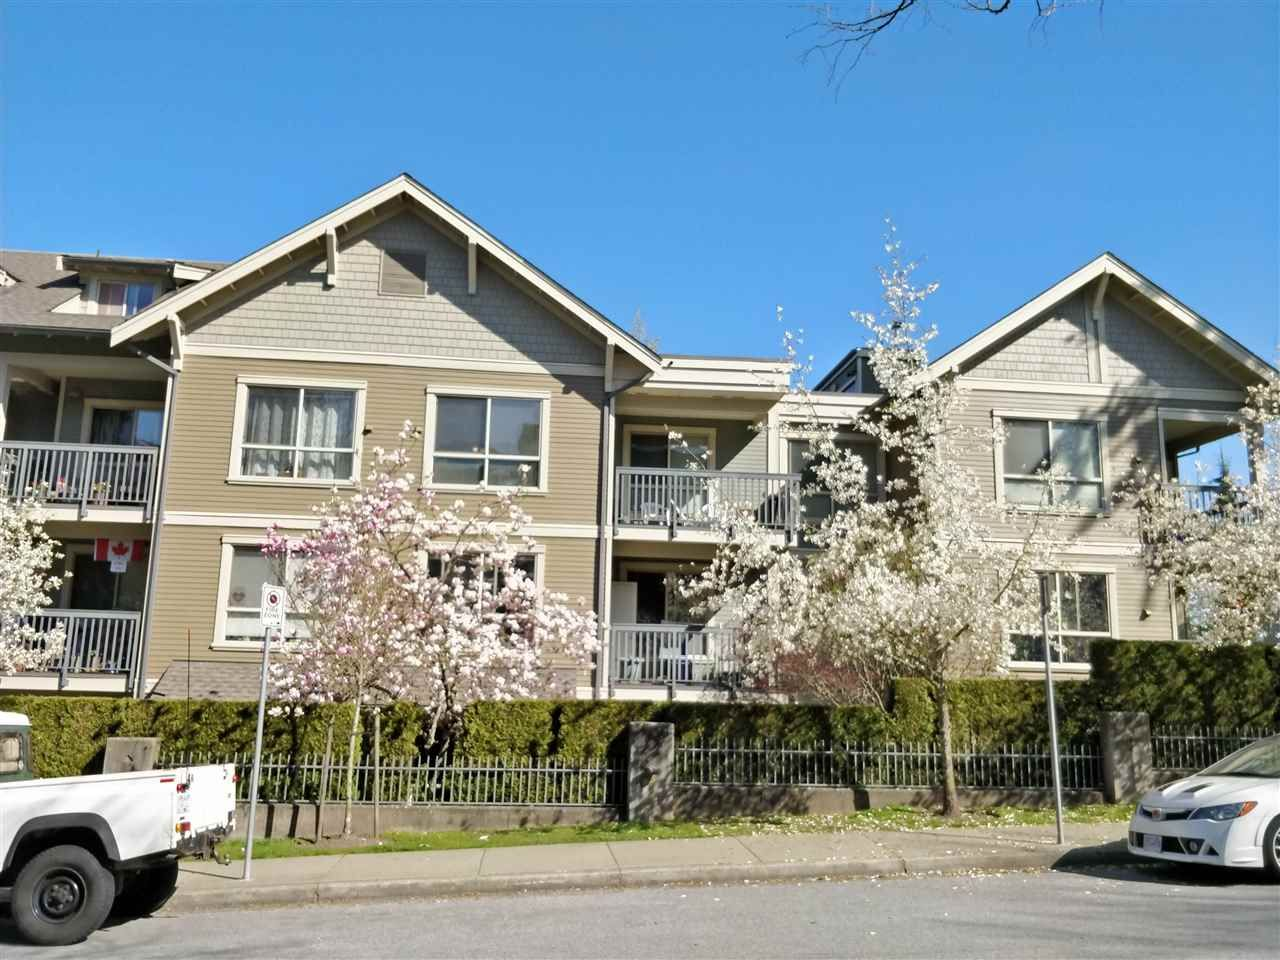 Main Photo: 208 3895 SANDELL Street in Burnaby: Central Park BS Condo for sale (Burnaby South)  : MLS®# R2452076